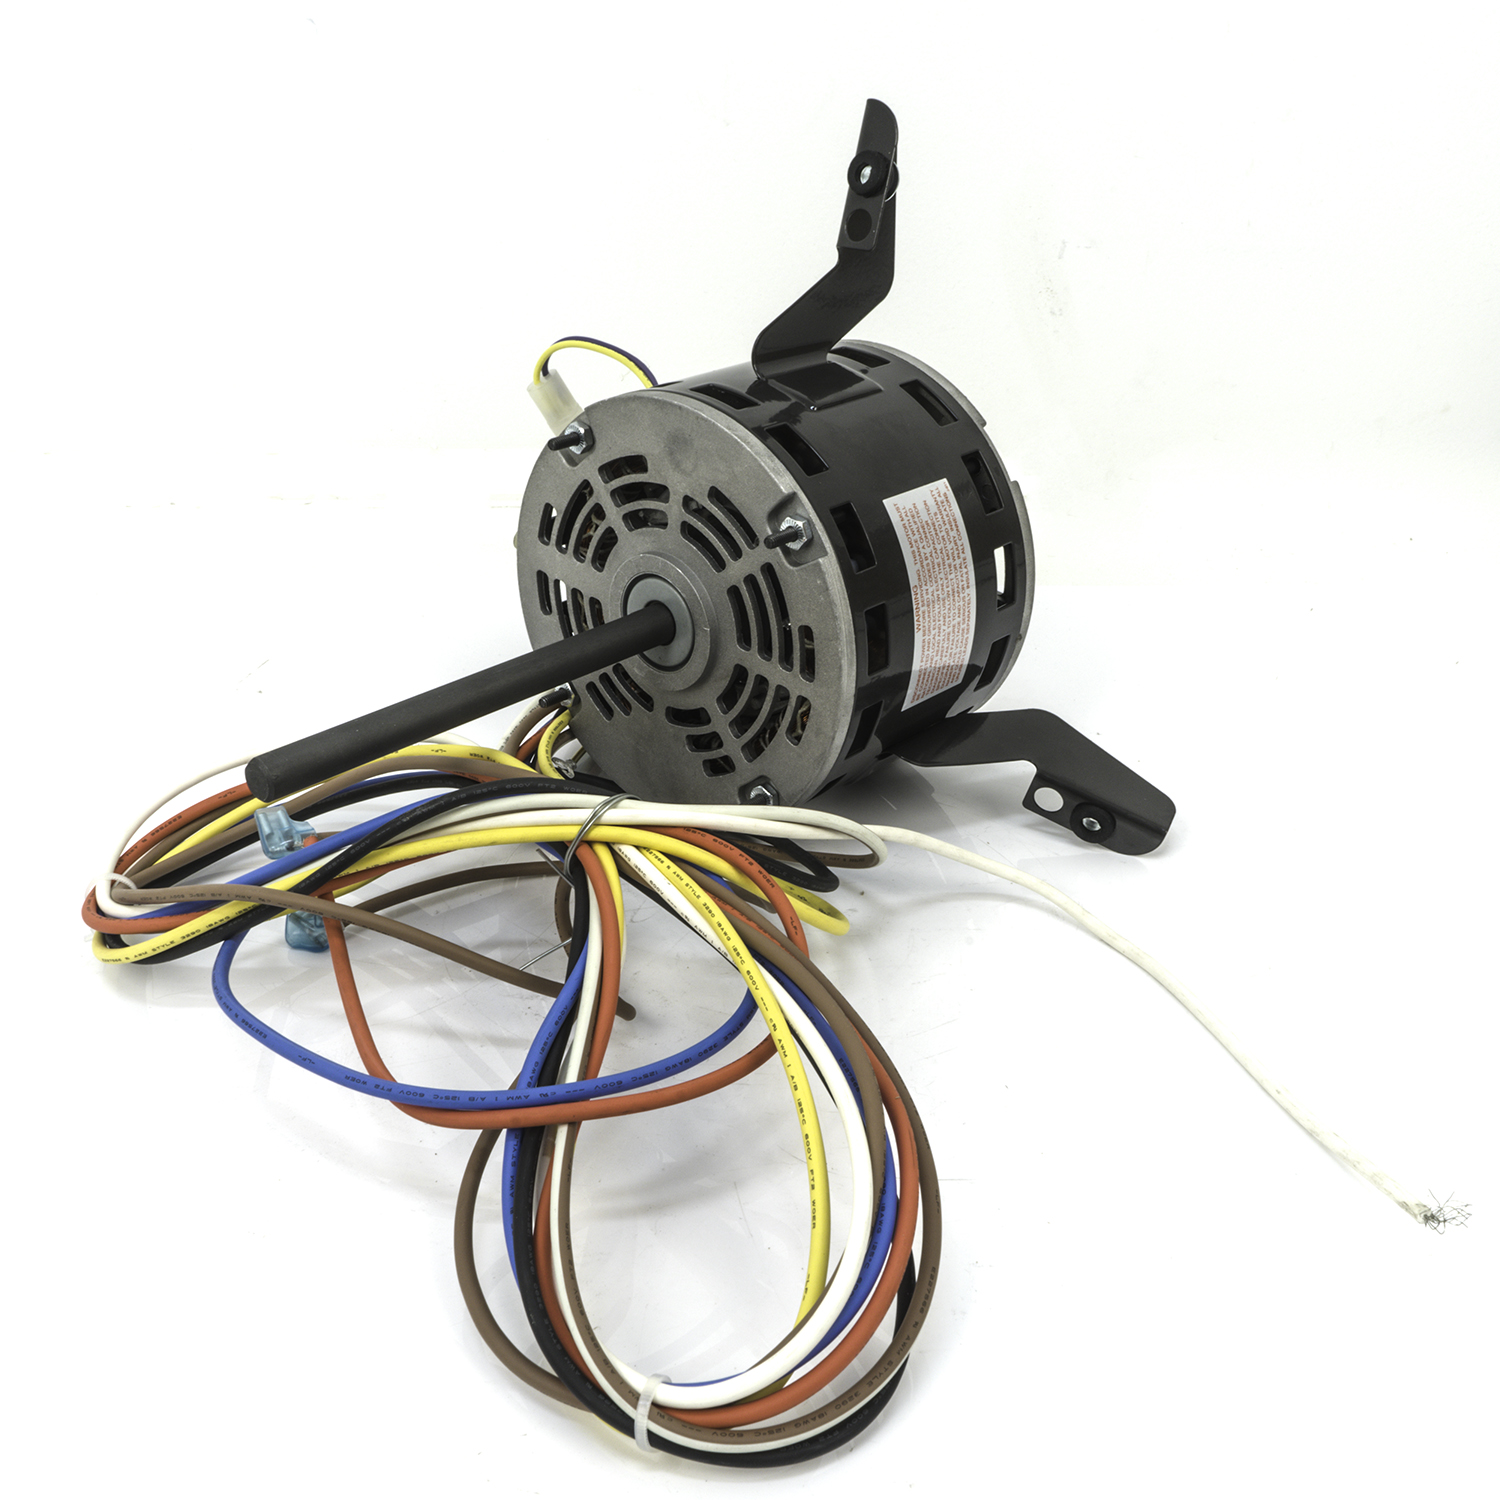 hight resolution of  torsion flex direct drive blower motor 1 4 hp 208 230 volt